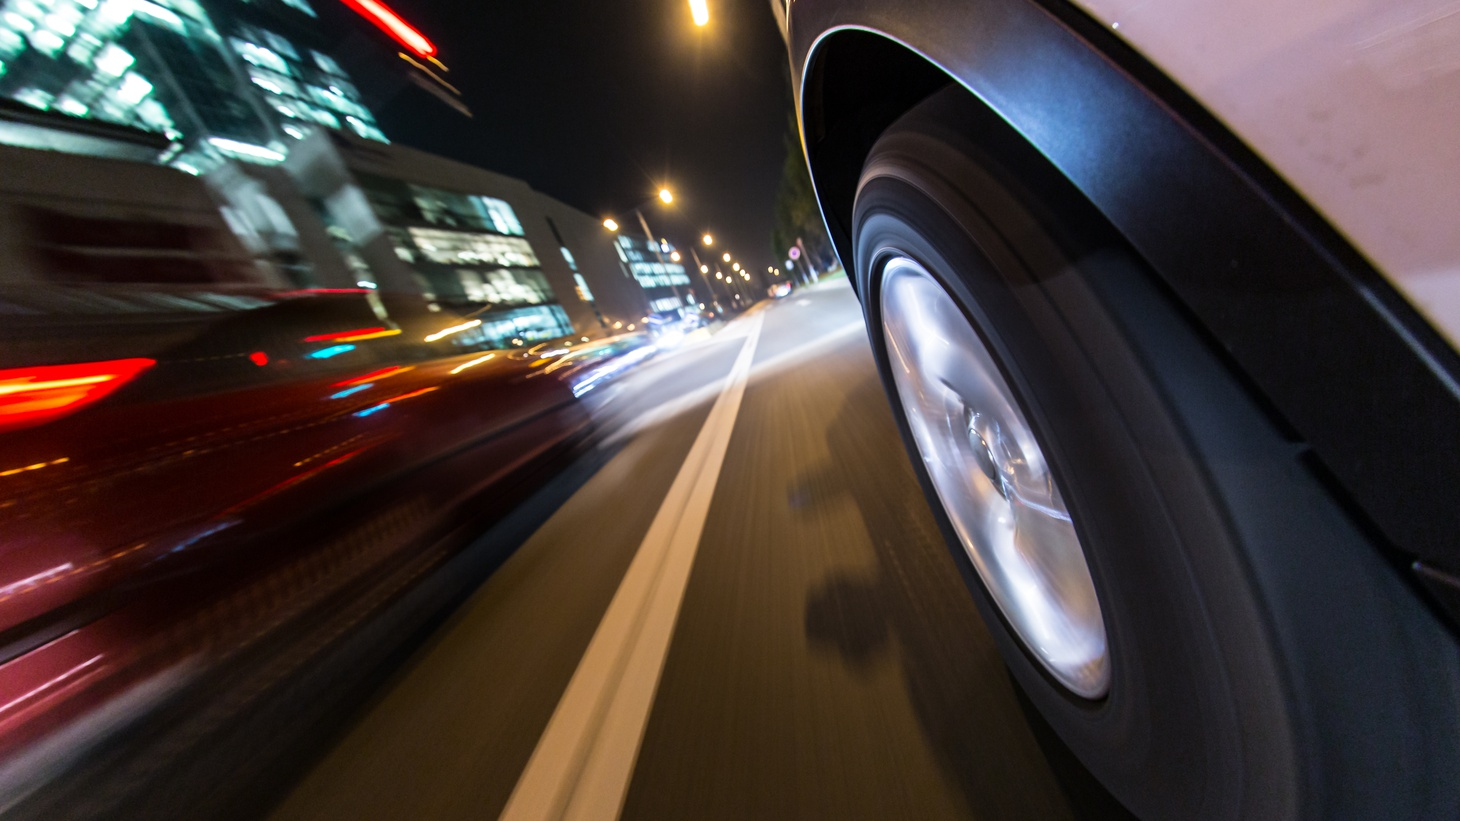 Street racing has been increasing during the pandemic. It typically takes place late at night on wide streets, from South LA to the San Fernando Valley, amassing attention on social media and often sending throngs of people to the scene.